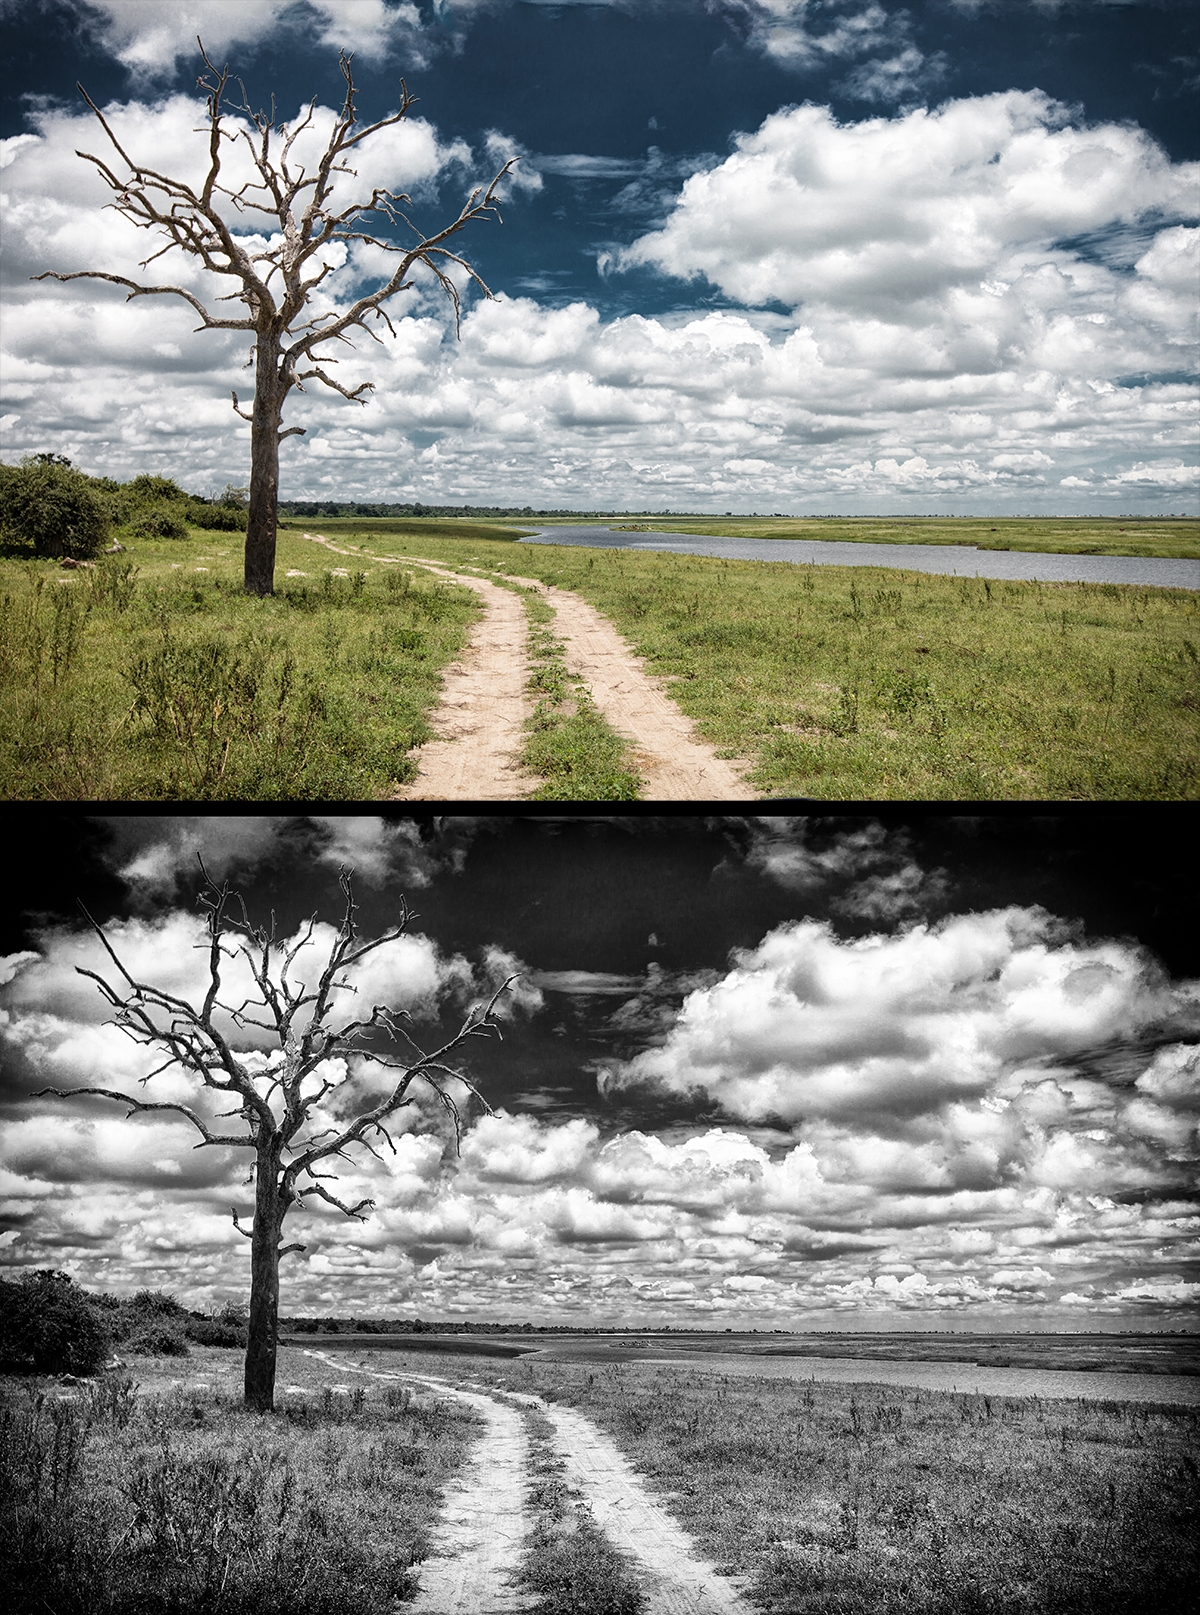 Brian braun africa photography tree color vs black and white